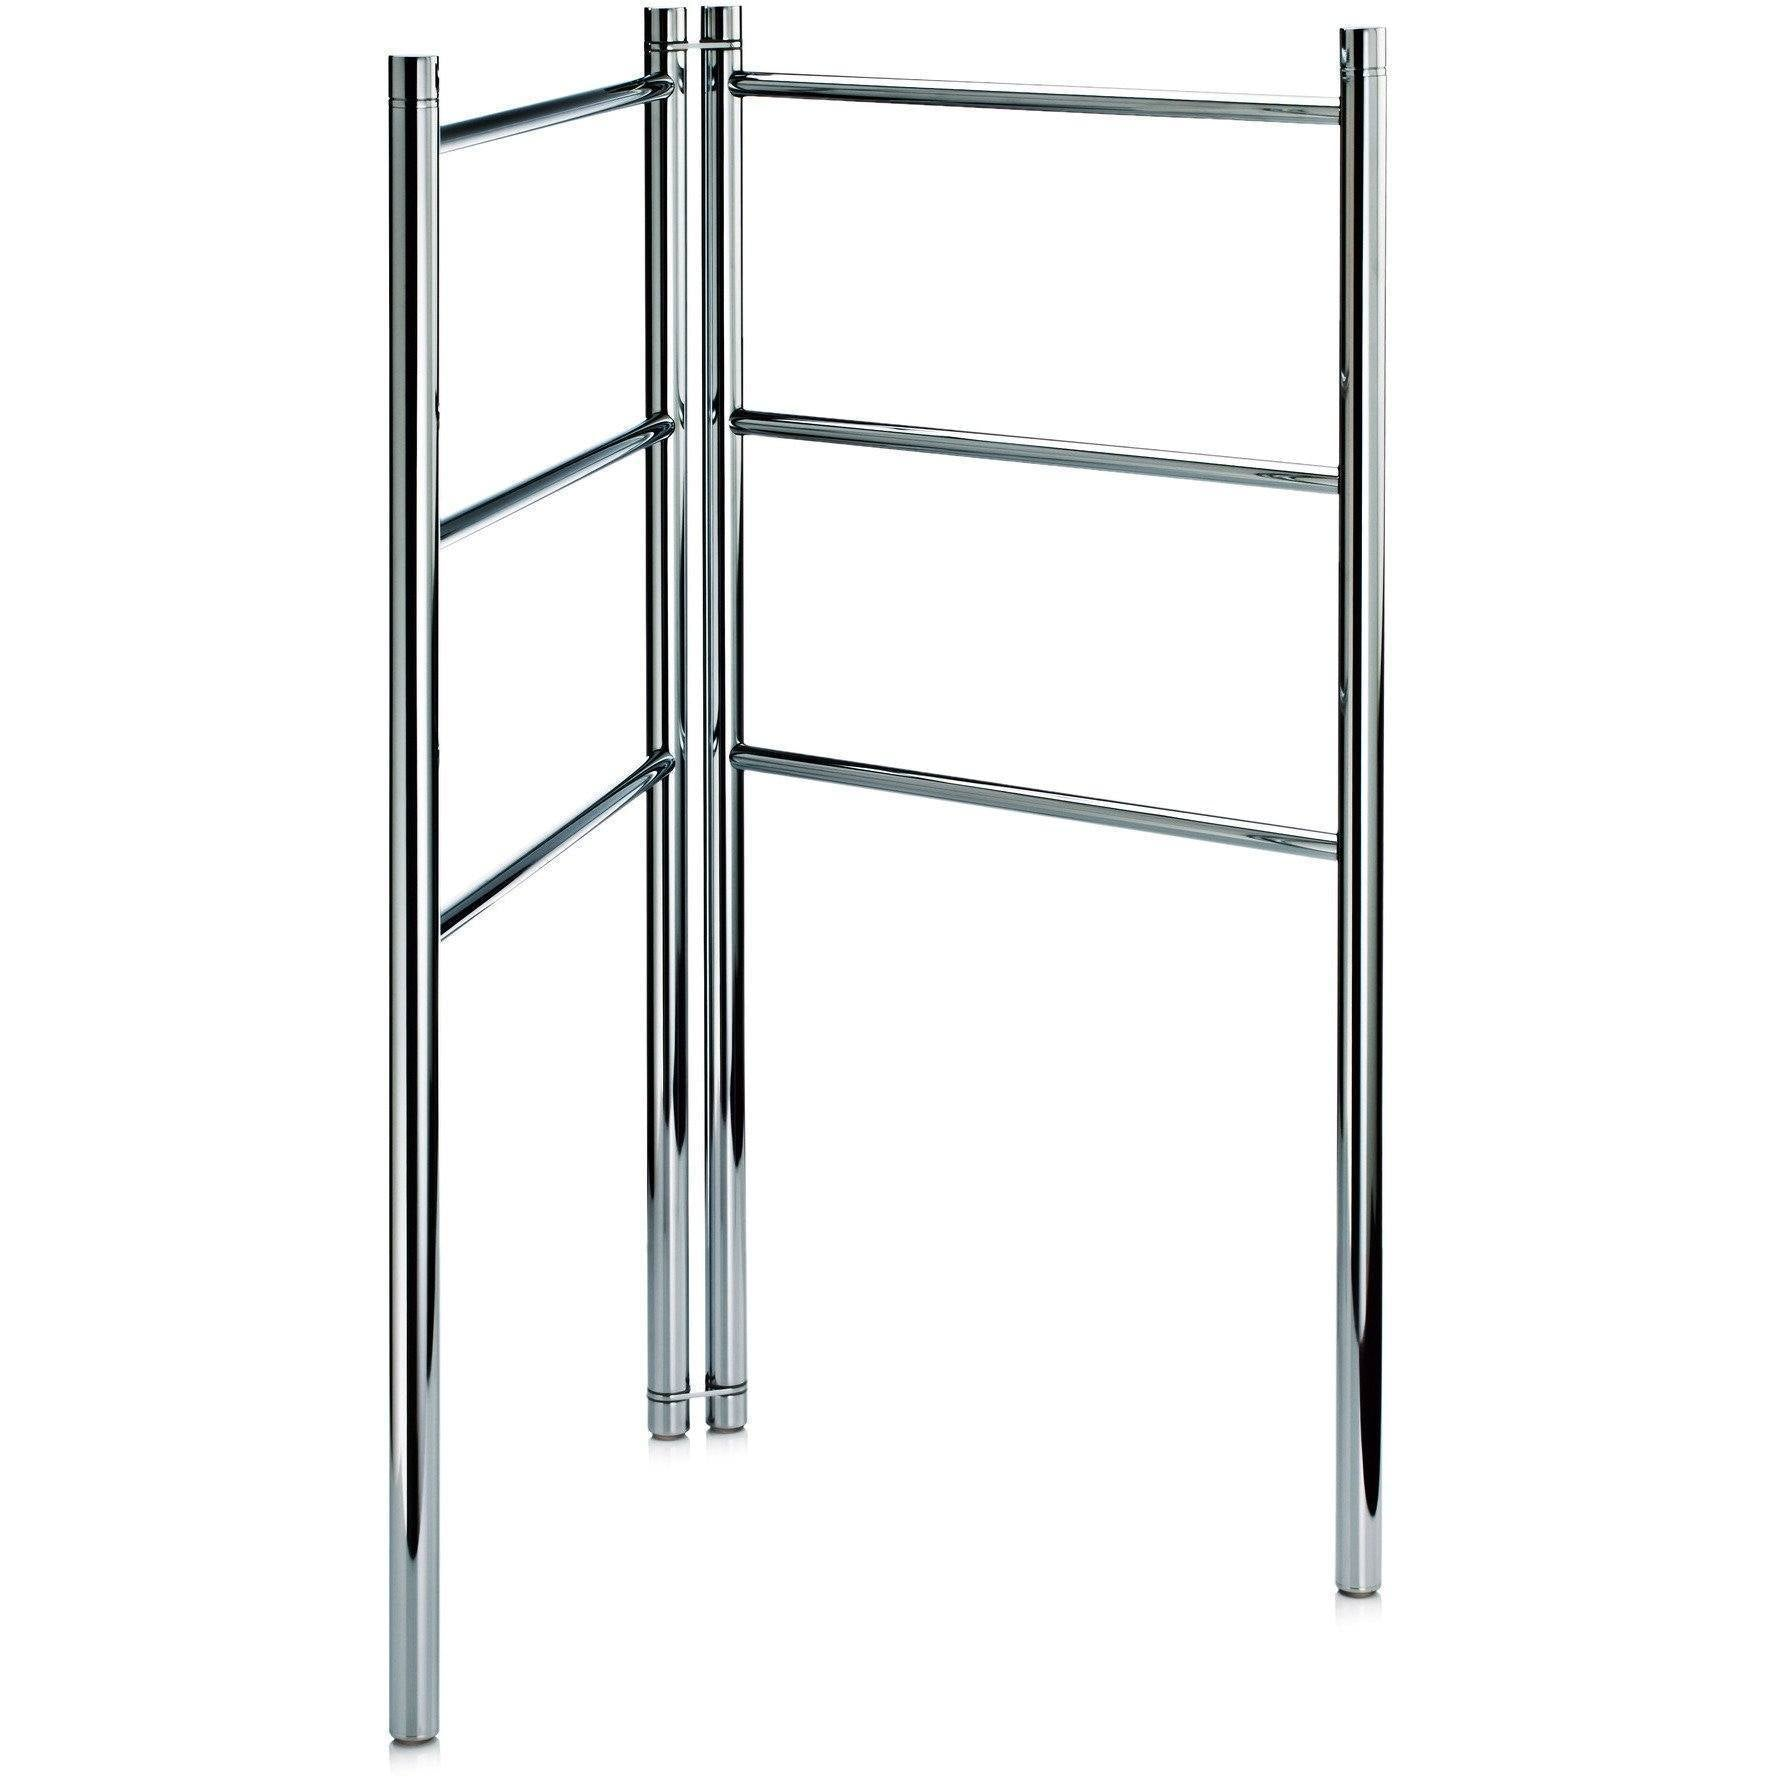 DWBA Freestanding Towel Ladder Bathroom Rack Stand Towel Holder, Foldable. Chrome